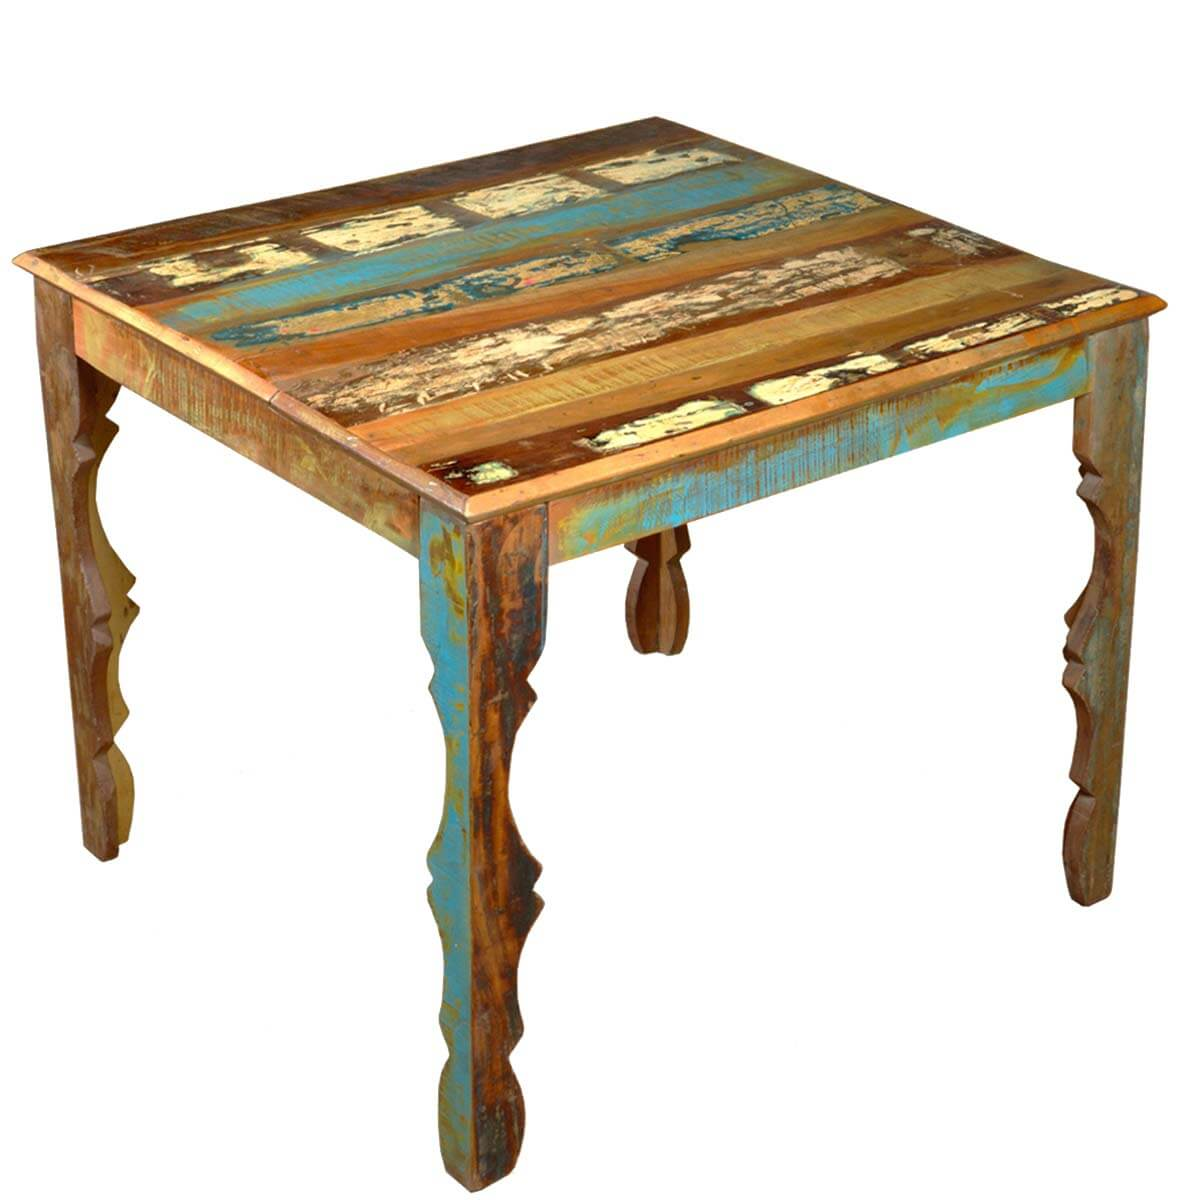 Rustic Reclaimed Wood 36  Square Dining Table w Decorative Legs. Custom Made Large Rustic Dining Tables